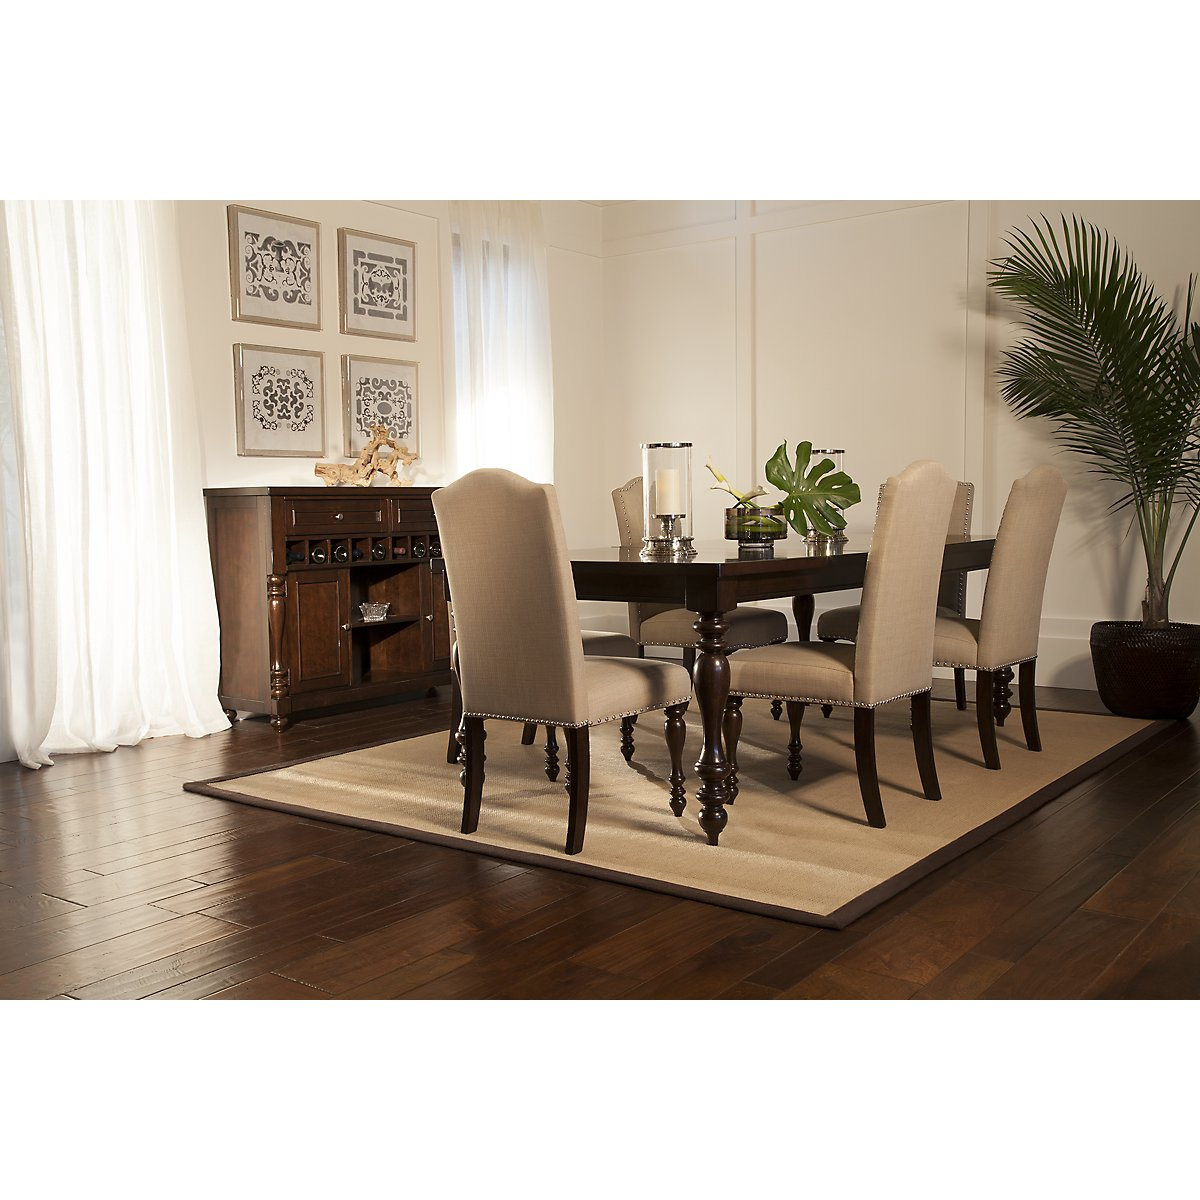 Mcgregor Dark Tone Rectangular Table 4 Upholstered Chairs